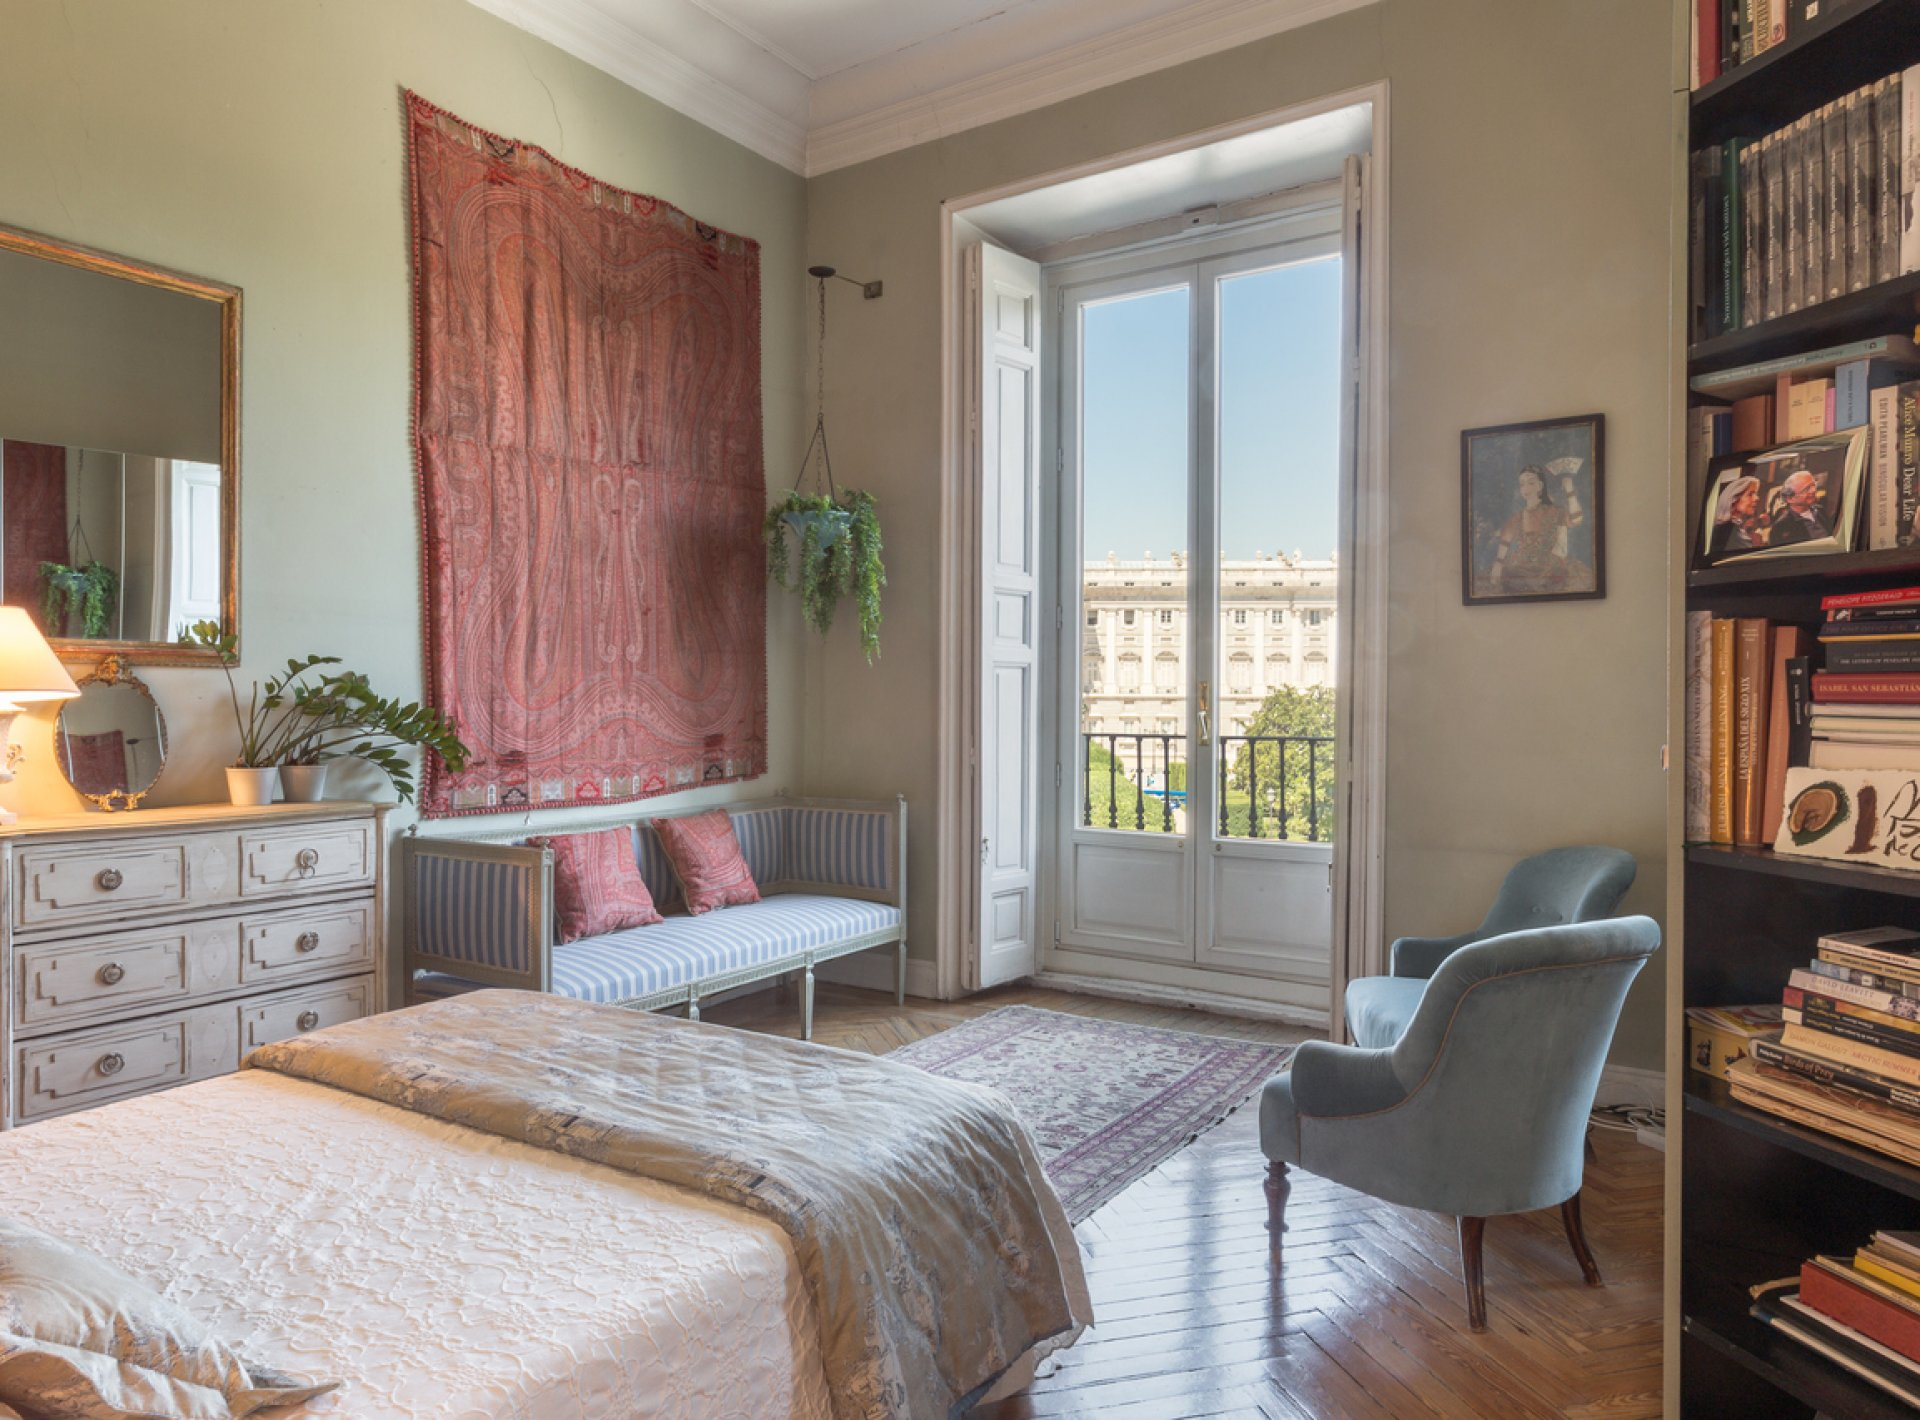 Sophisticated 4-Bedroom Apartment in the Centre of Madrid with Views of the Royal Palace